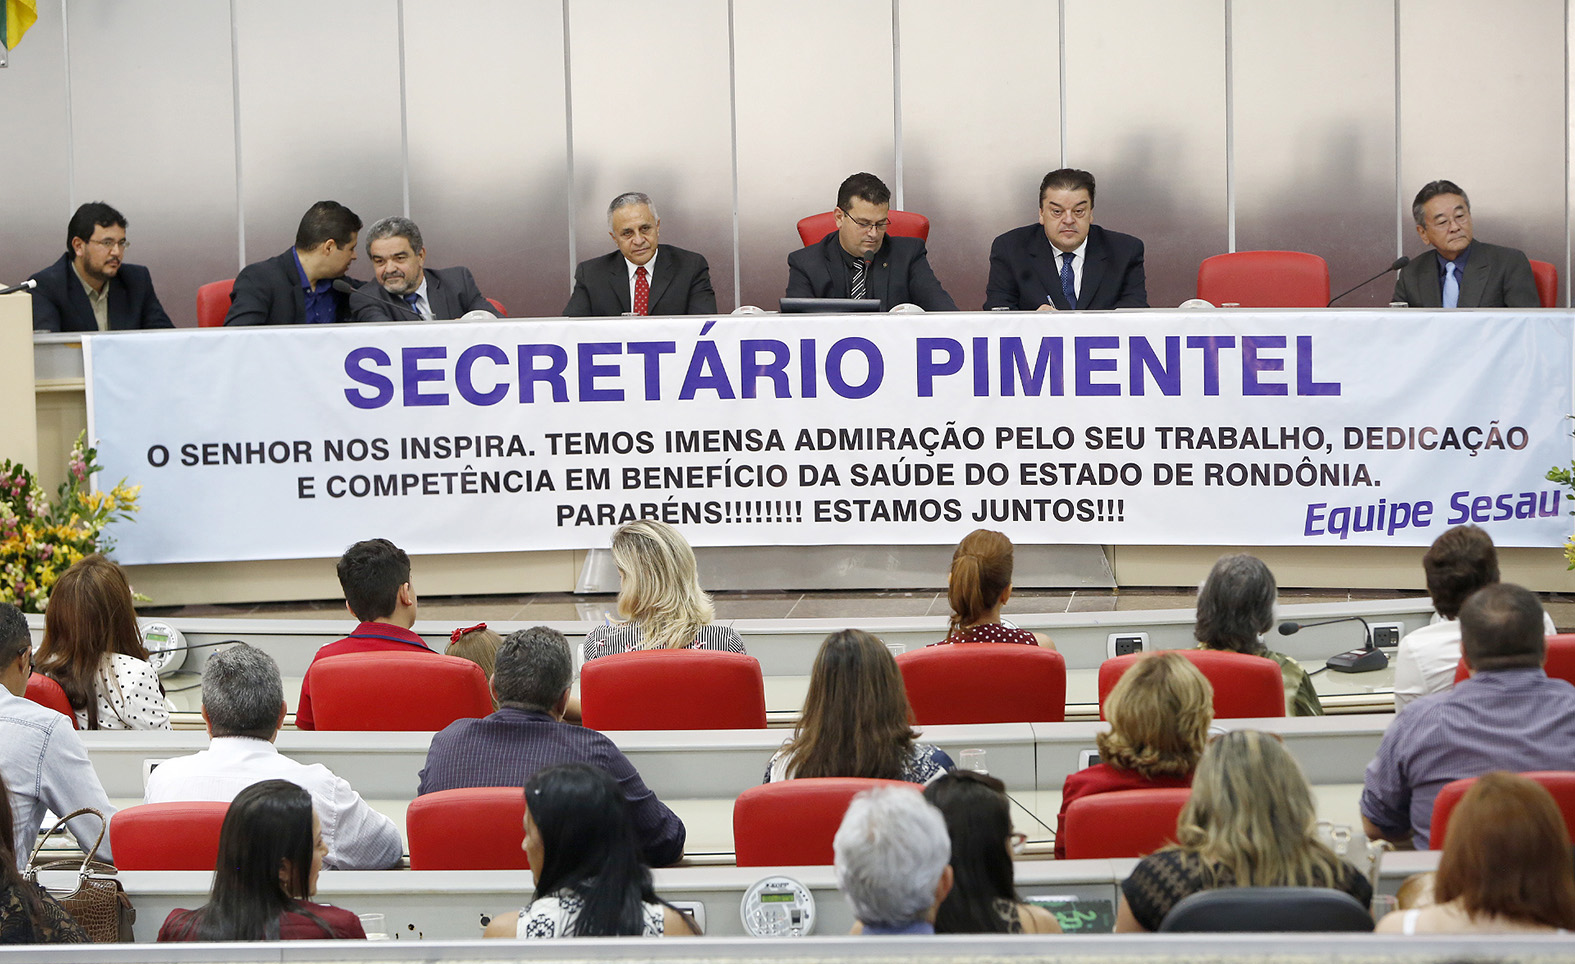 Secret_rio Williames Pimentel _ homenageado na Assembleia Legislativa-17Ab17-Jos_ Hilde-Decom-ALE-RO (7)